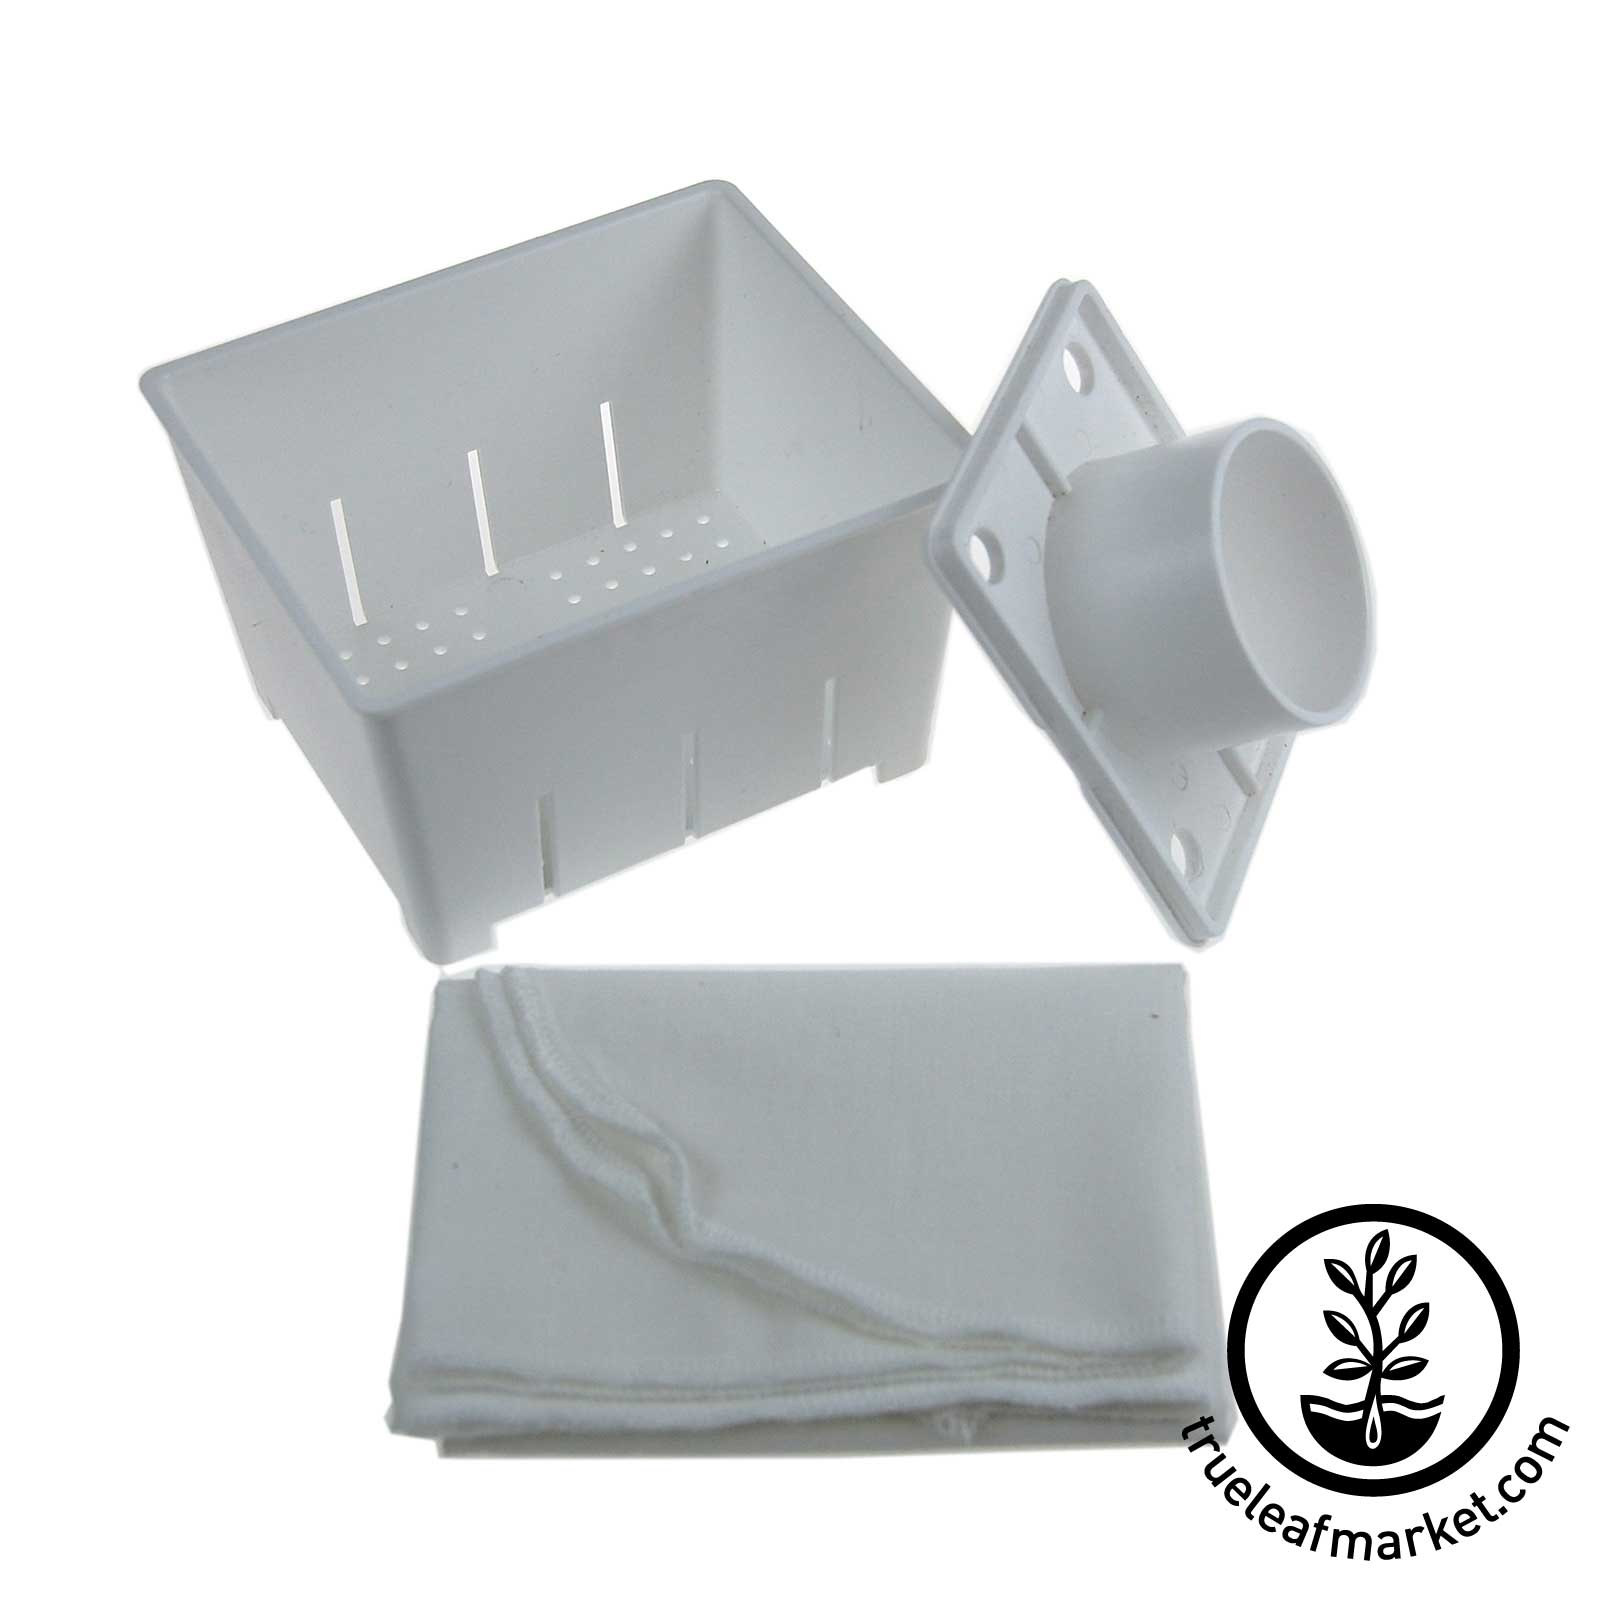 Tofu Mold - Medium Plastic Press